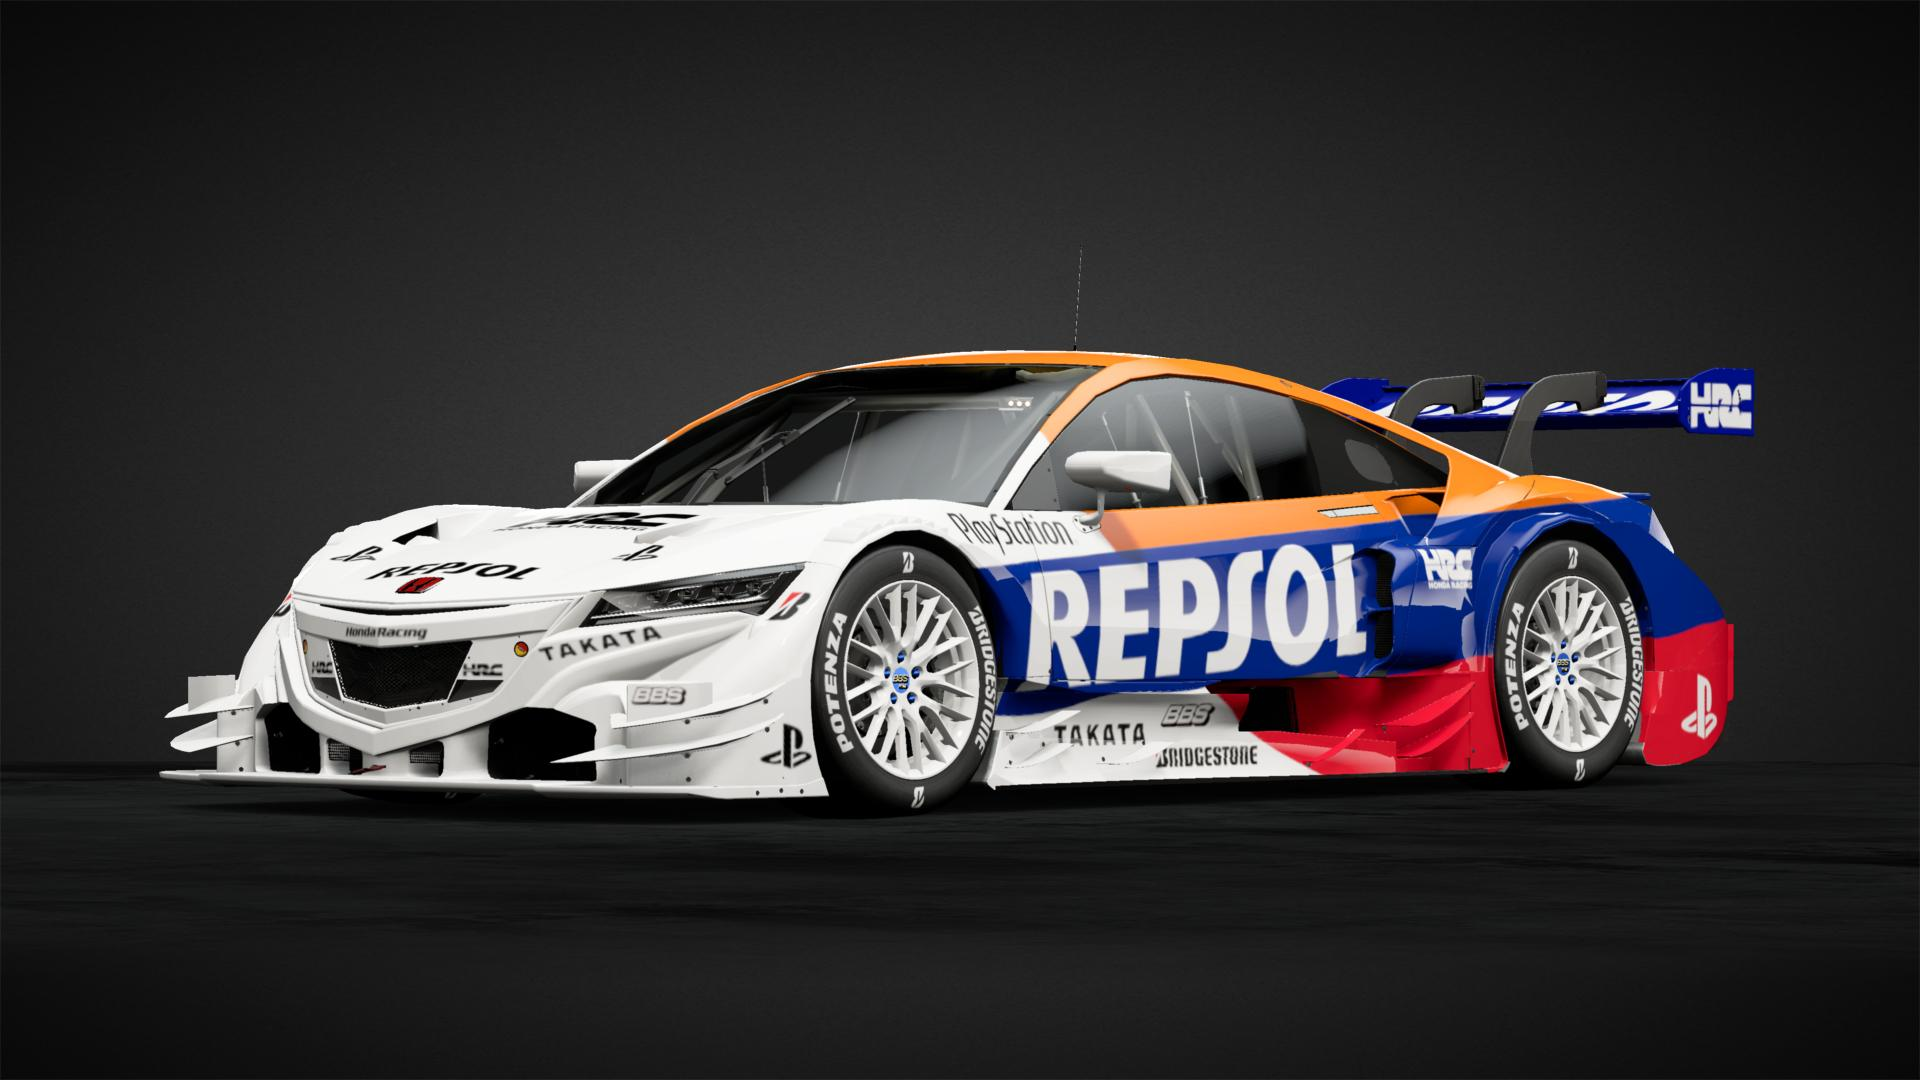 Repsol Hrc Nsx Concept Gt Gr2 Car Livery By Giveyouwings Community Gran Turismo Sport